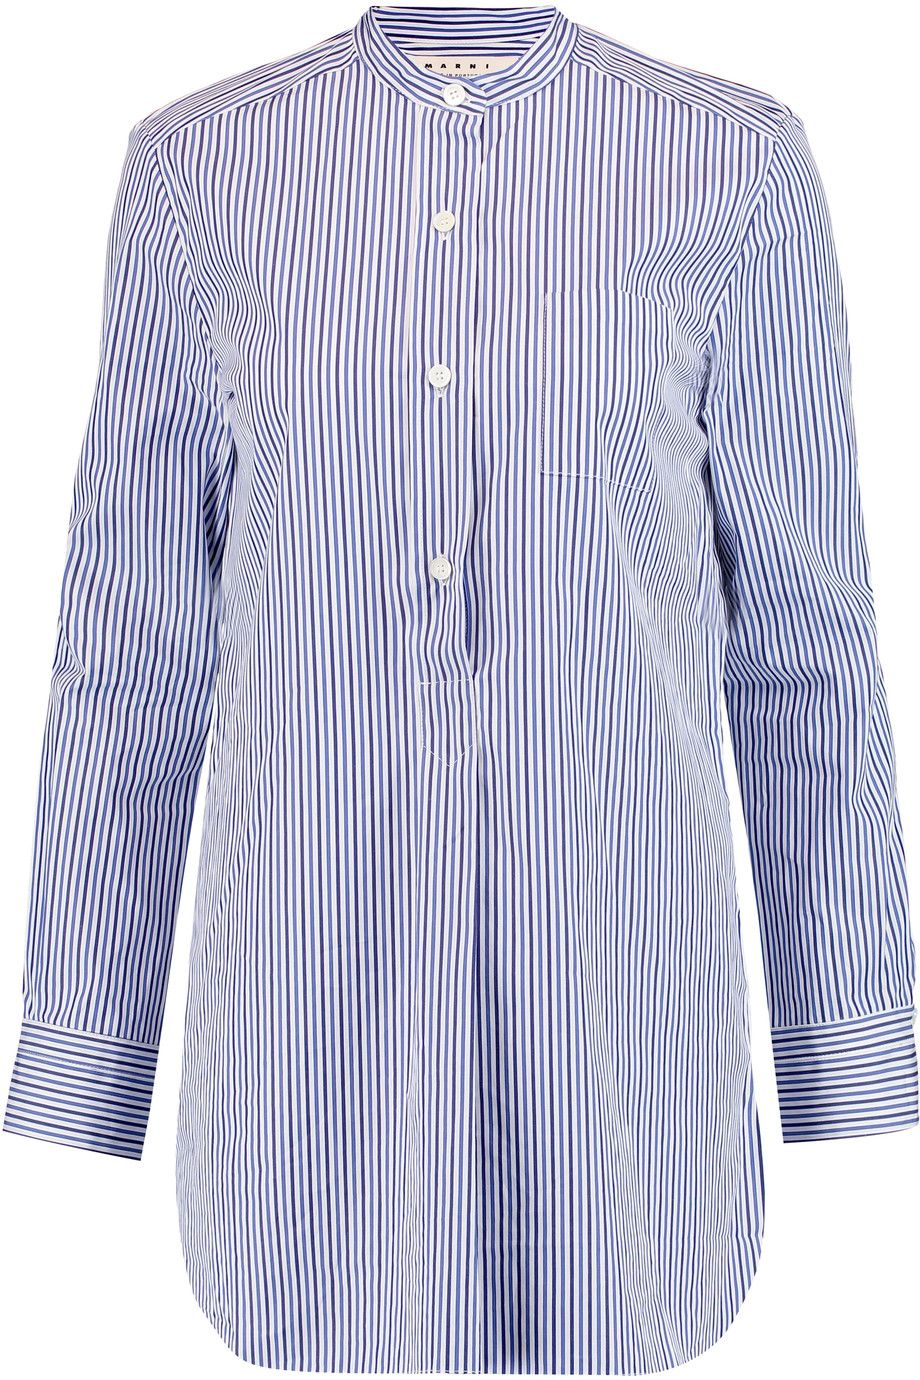 MARNI Striped cotton-poplin shirt. #marni #cloth #shirt